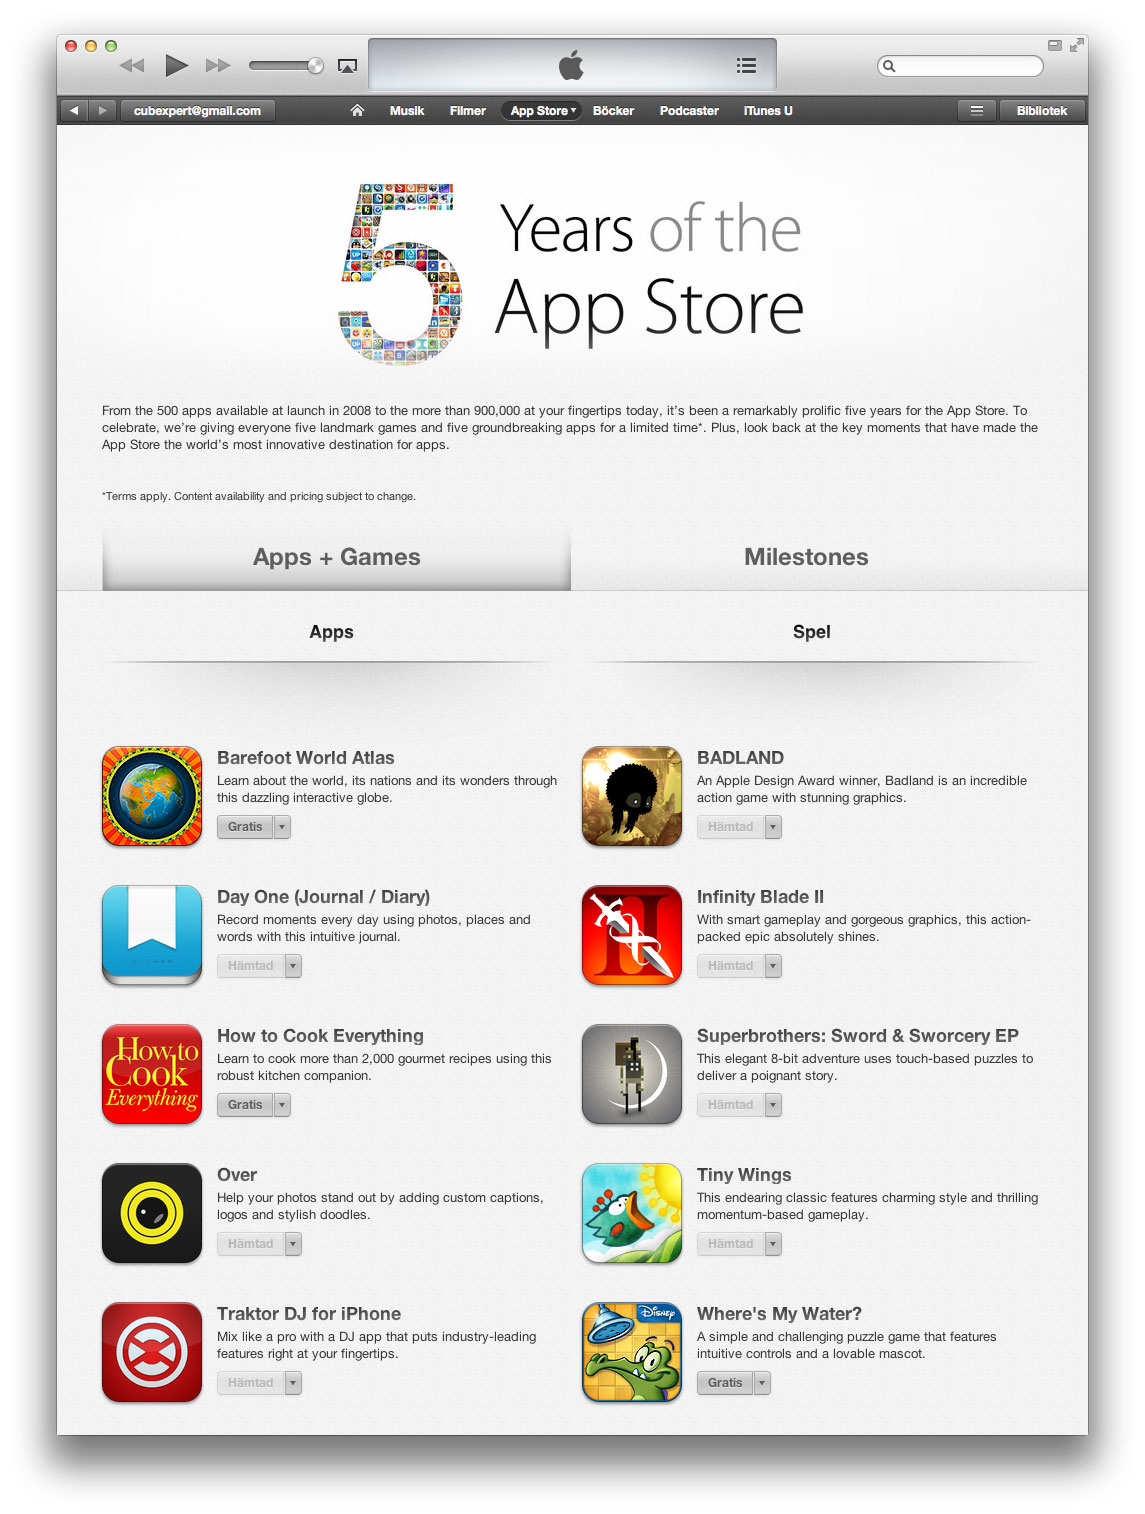 App Store five years